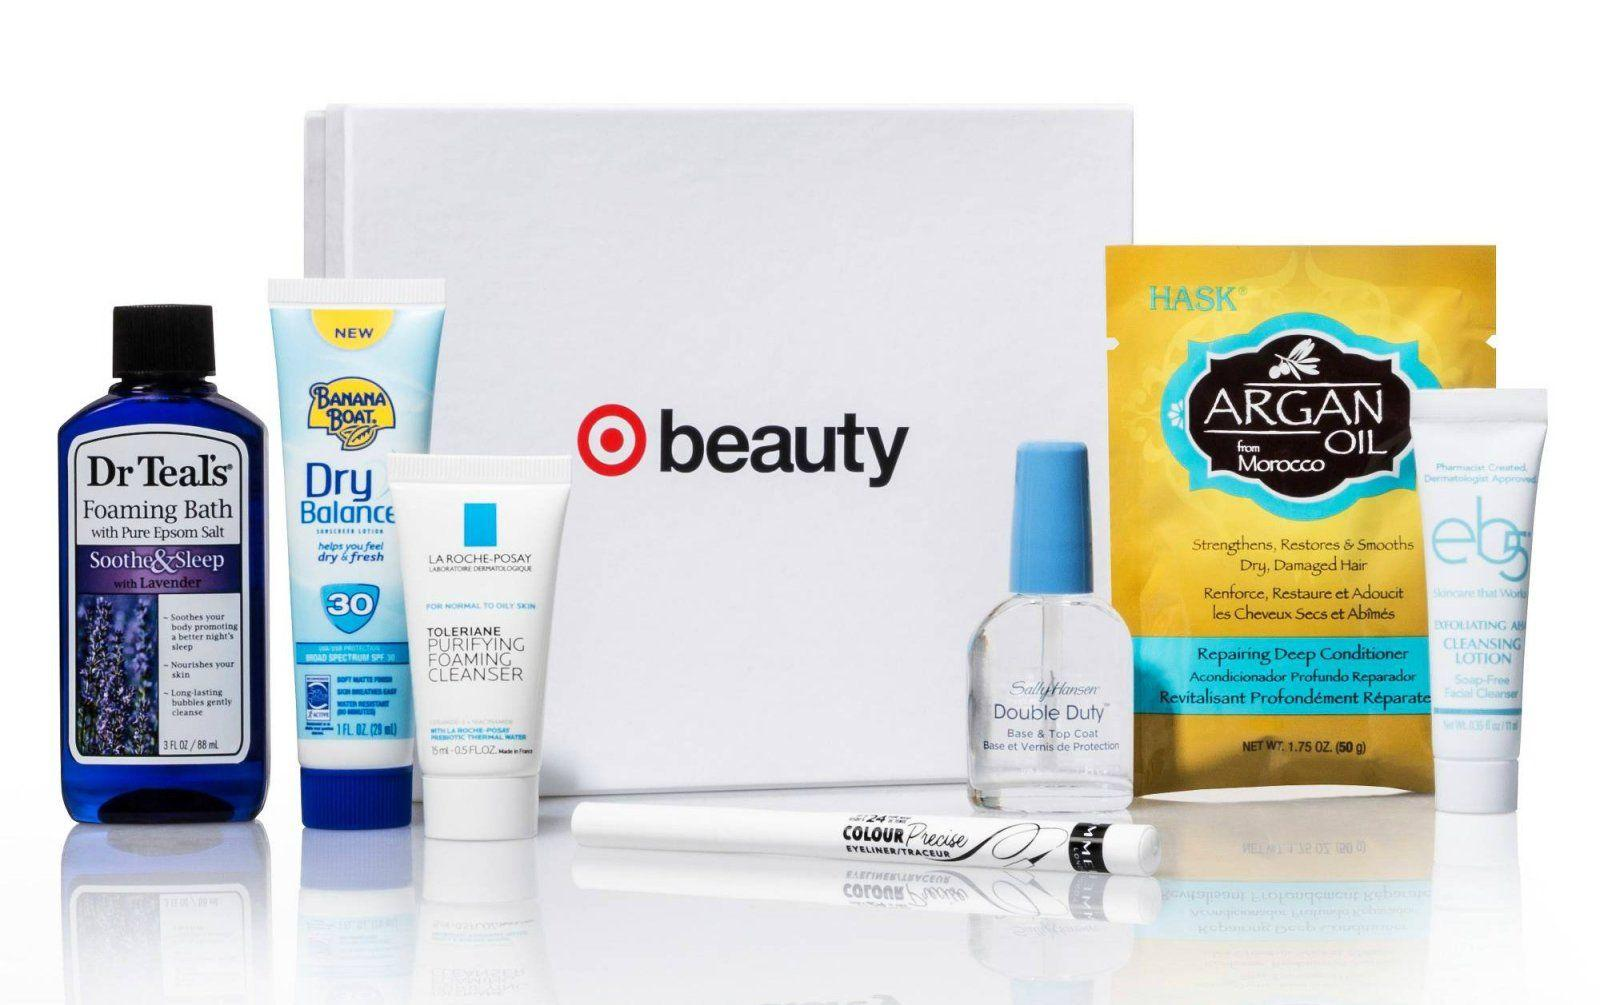 2 New Beauty Boxes For Just $7